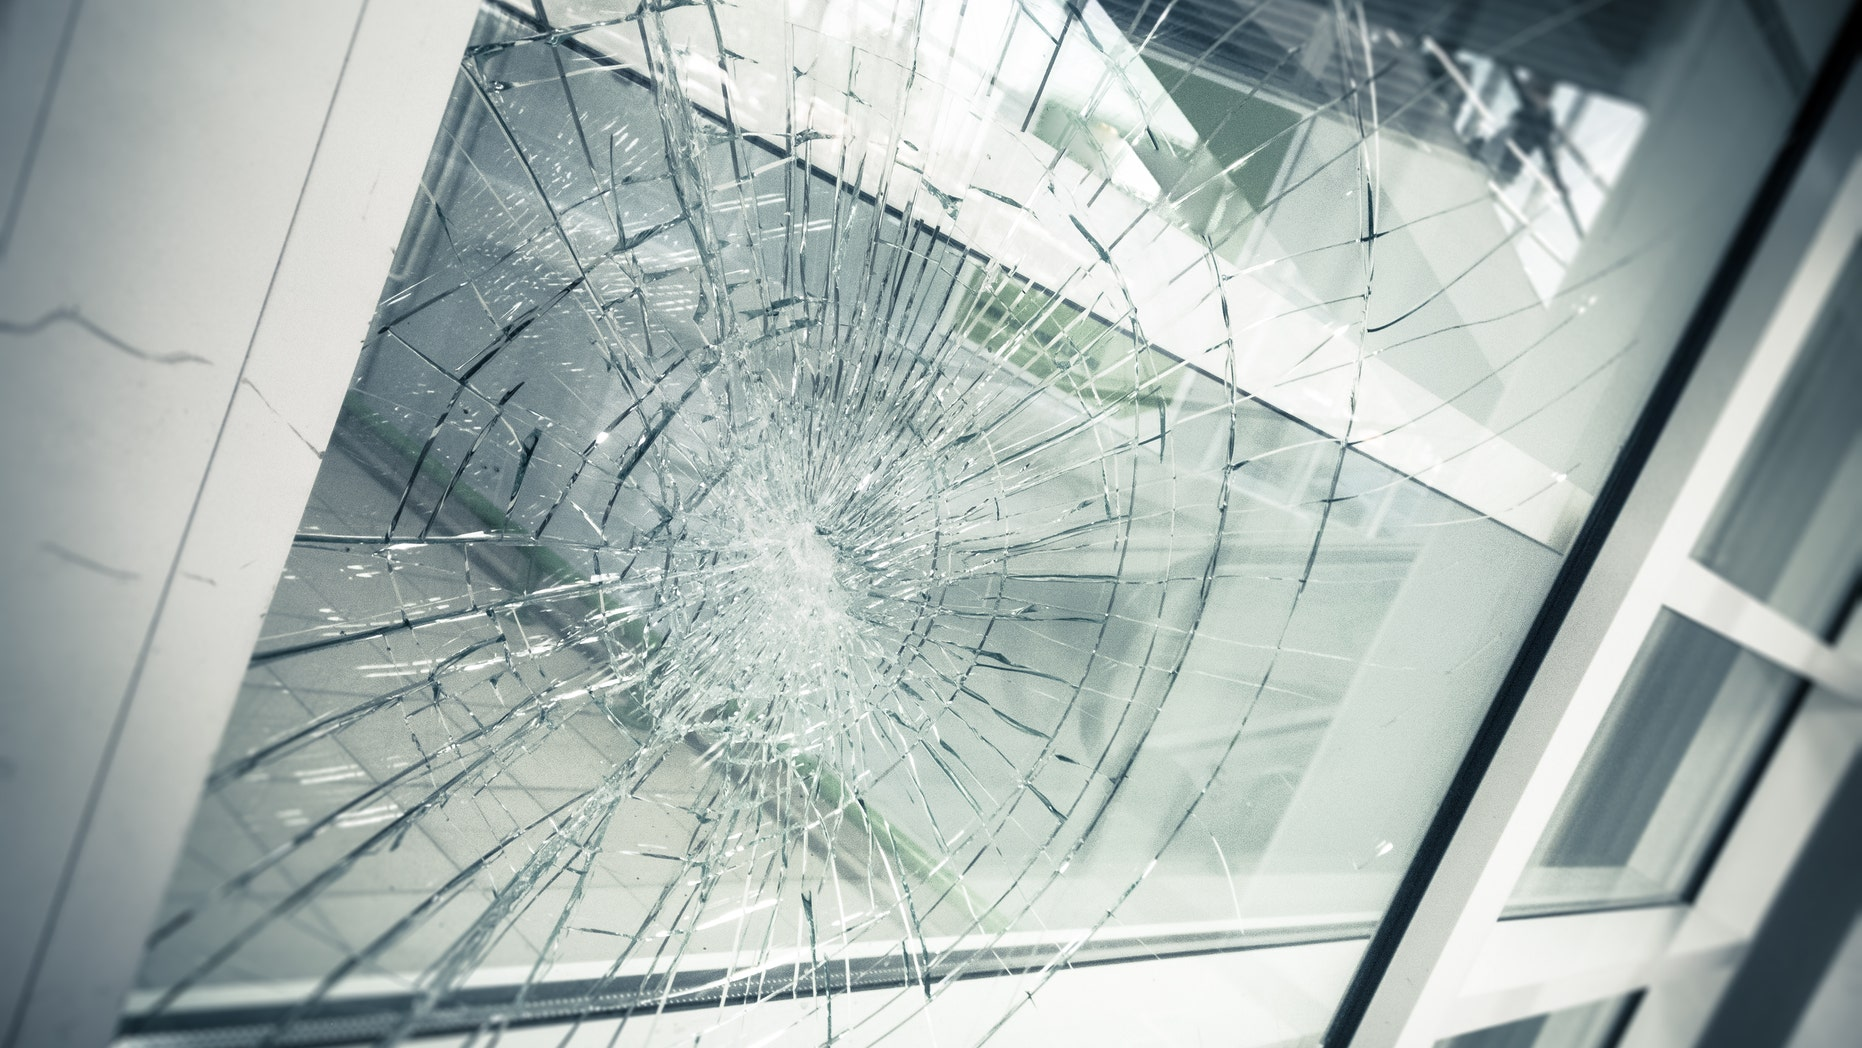 The boy said that, about four weeks earlier, he had injured his face when he crashed into a glass window after fainting.